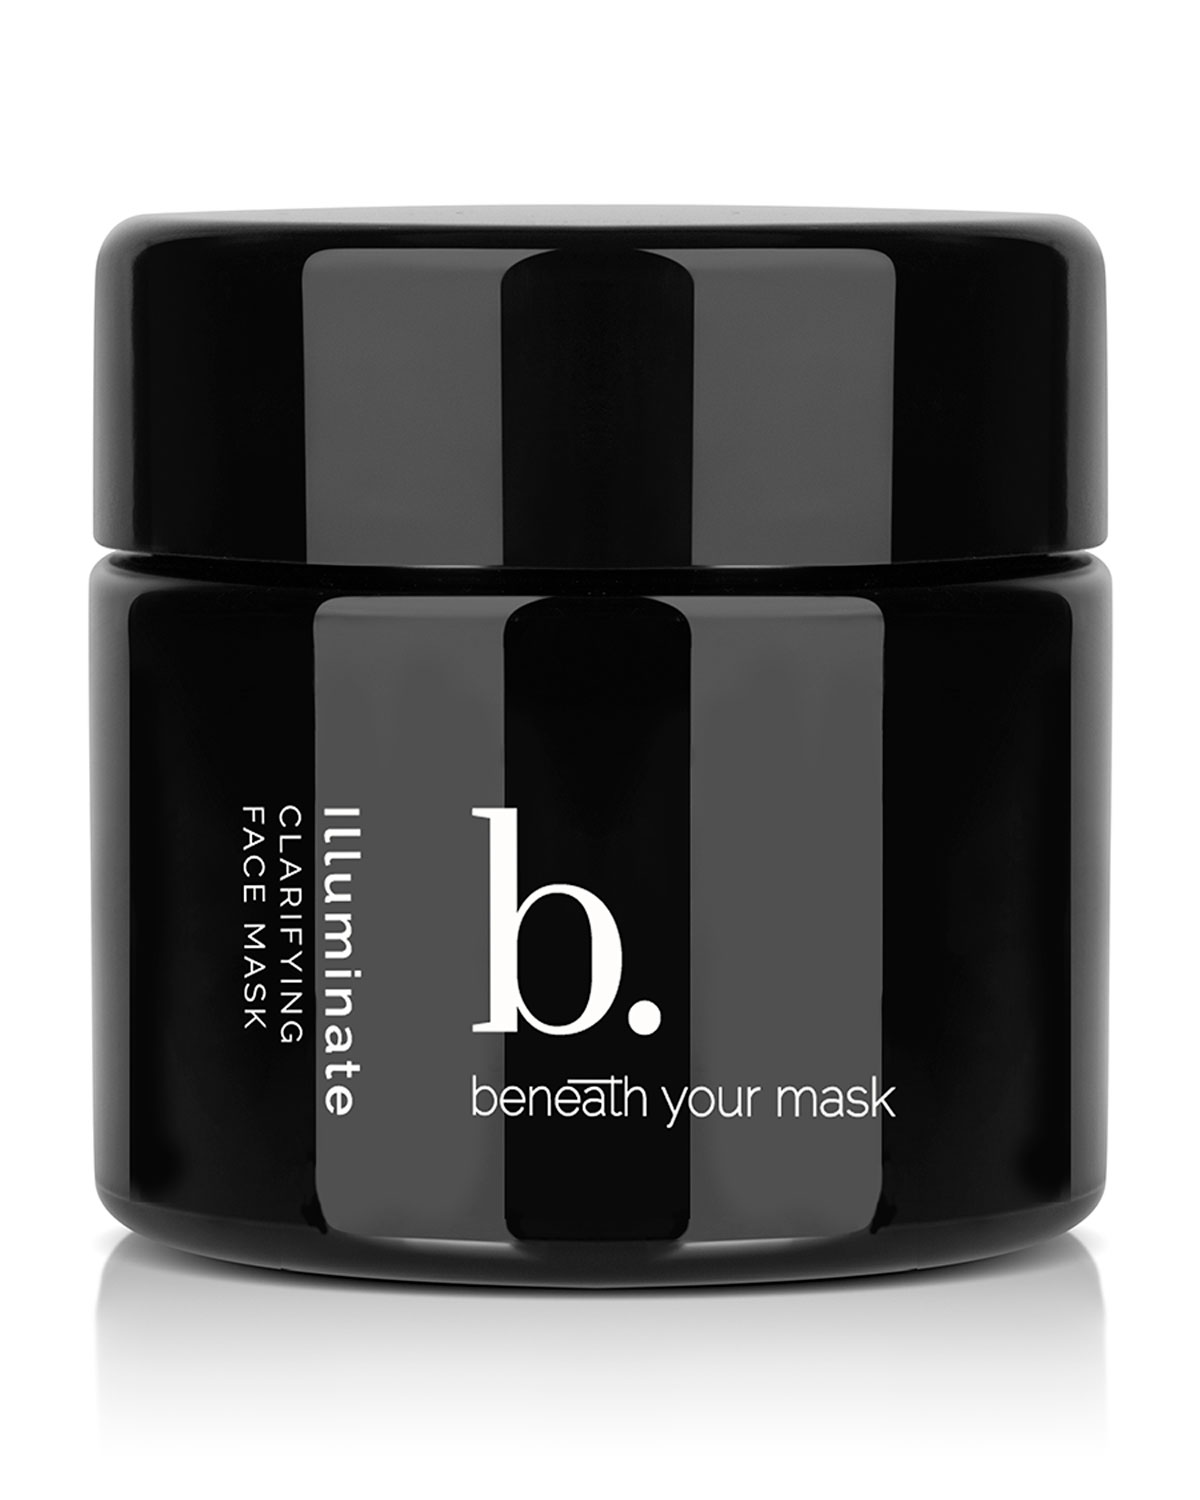 Beneath Your Mask 3.4 oz. Illuminate Clarifying Face Mask